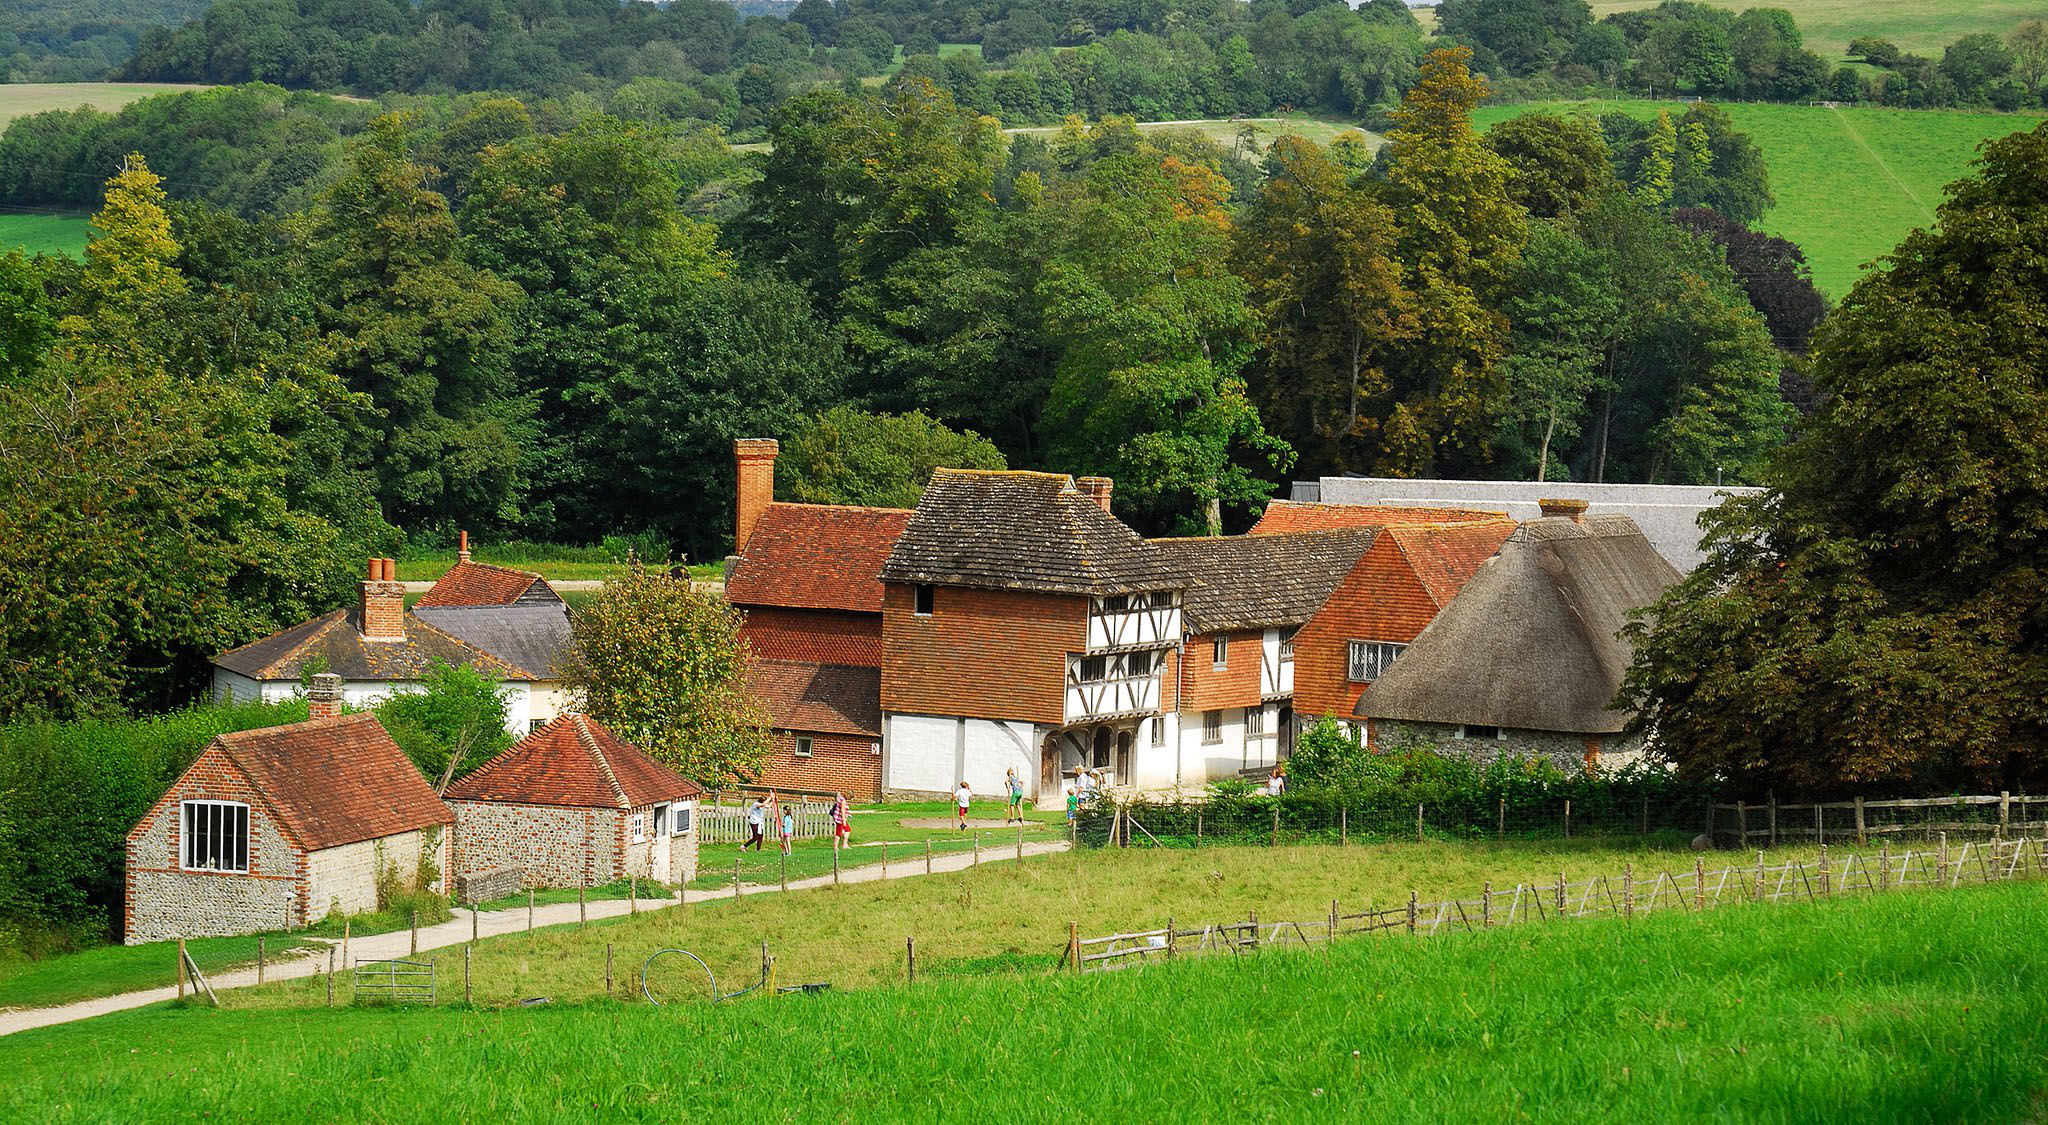 Building collection at the Weald and Downland Museum, Singleton by Puckpics.jpg